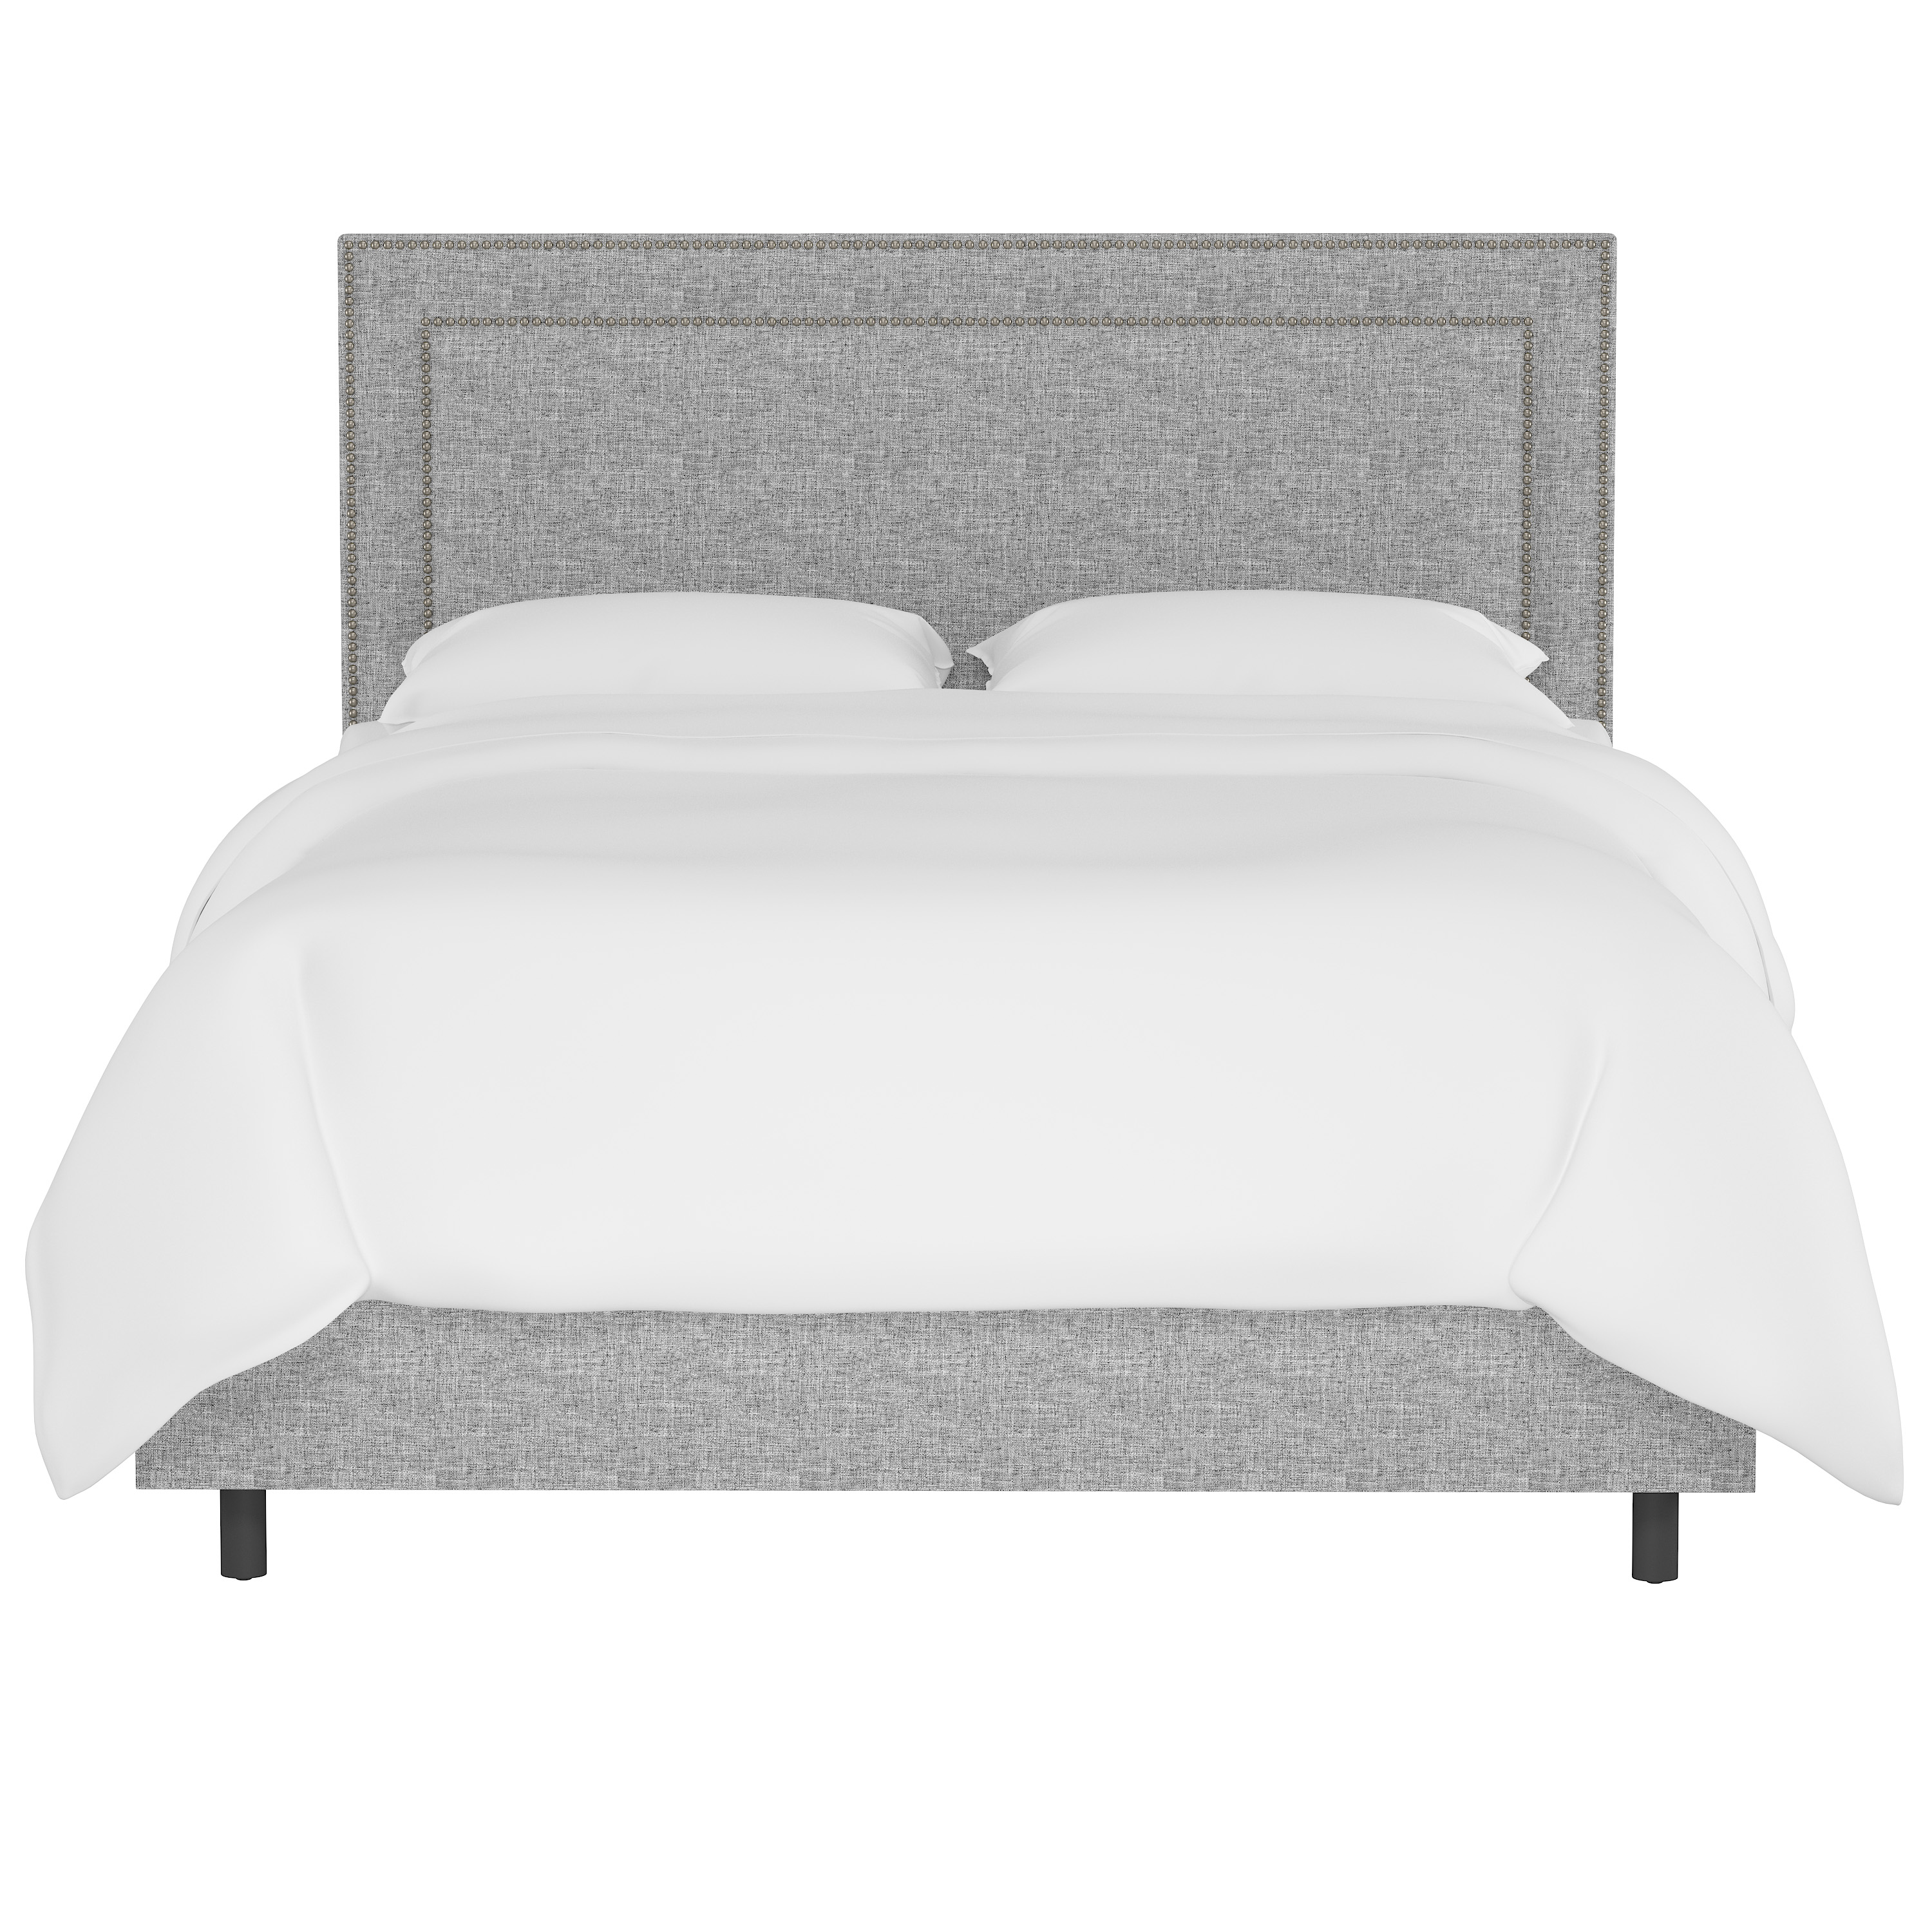 King Williams Bed in Pumice, Pewter Nailheads